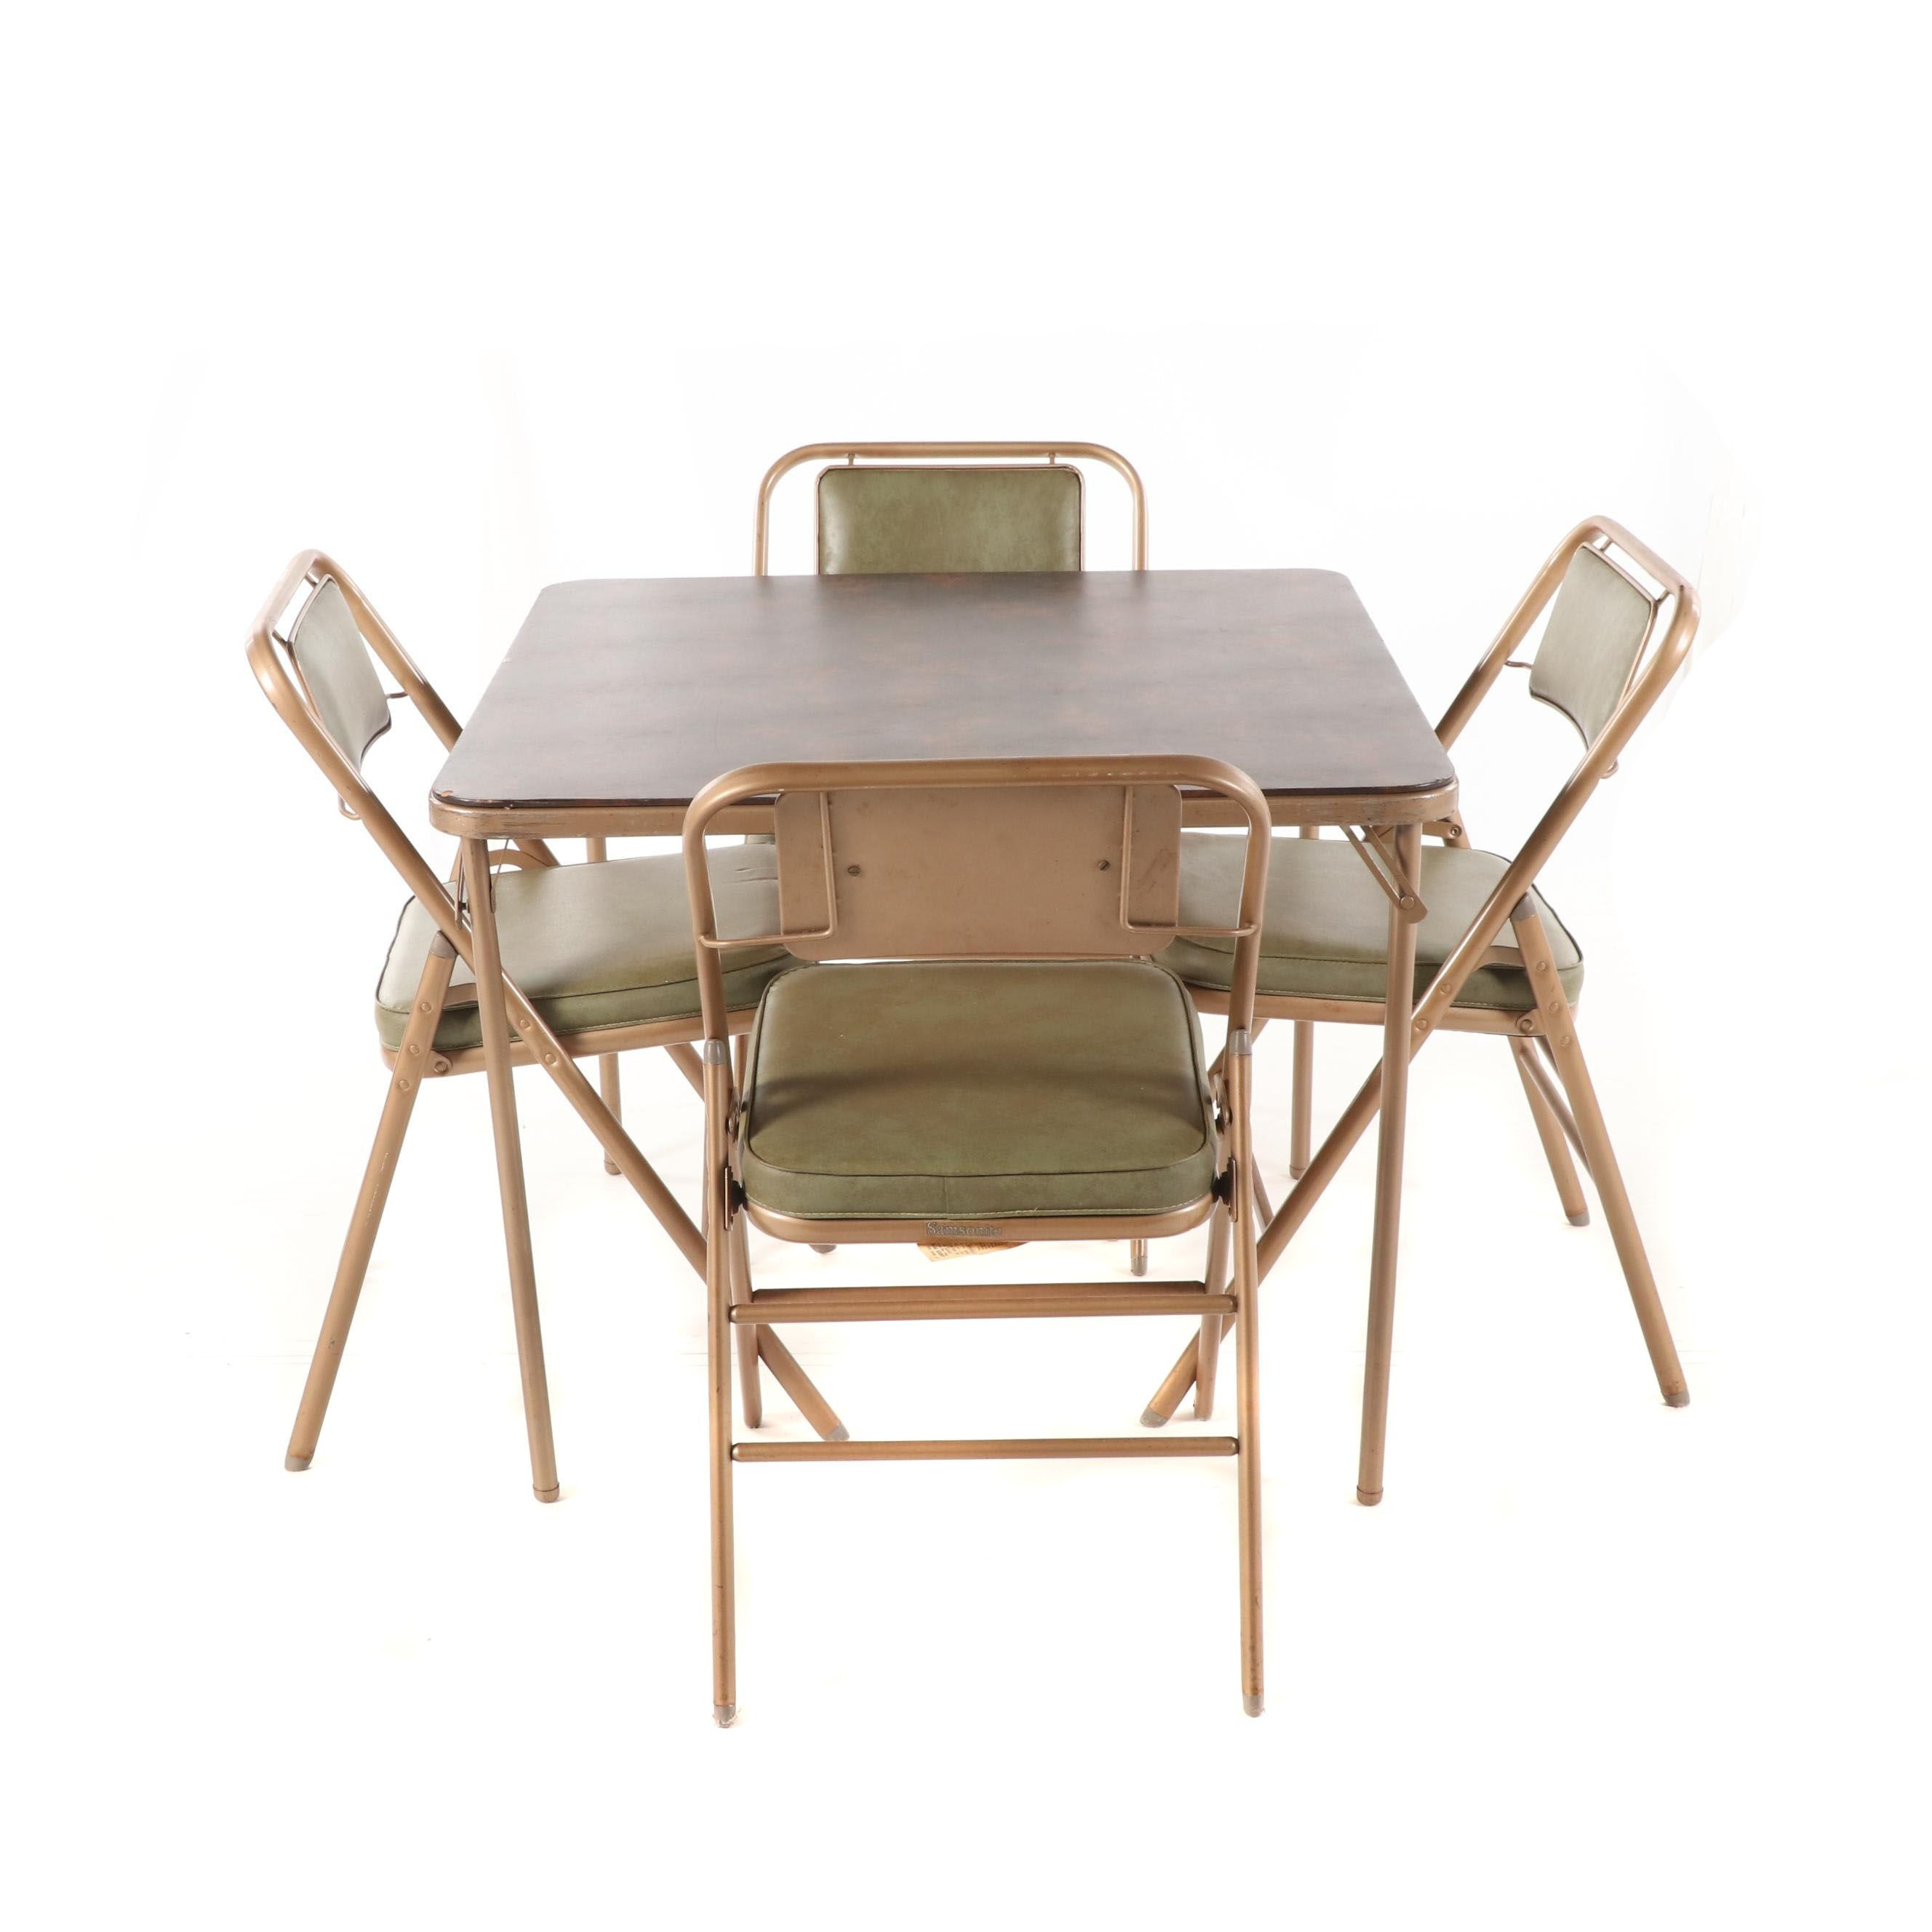 Metal Frame Vinyl Upholstered Folding Table and Chairs by Samsonite, 20th C.